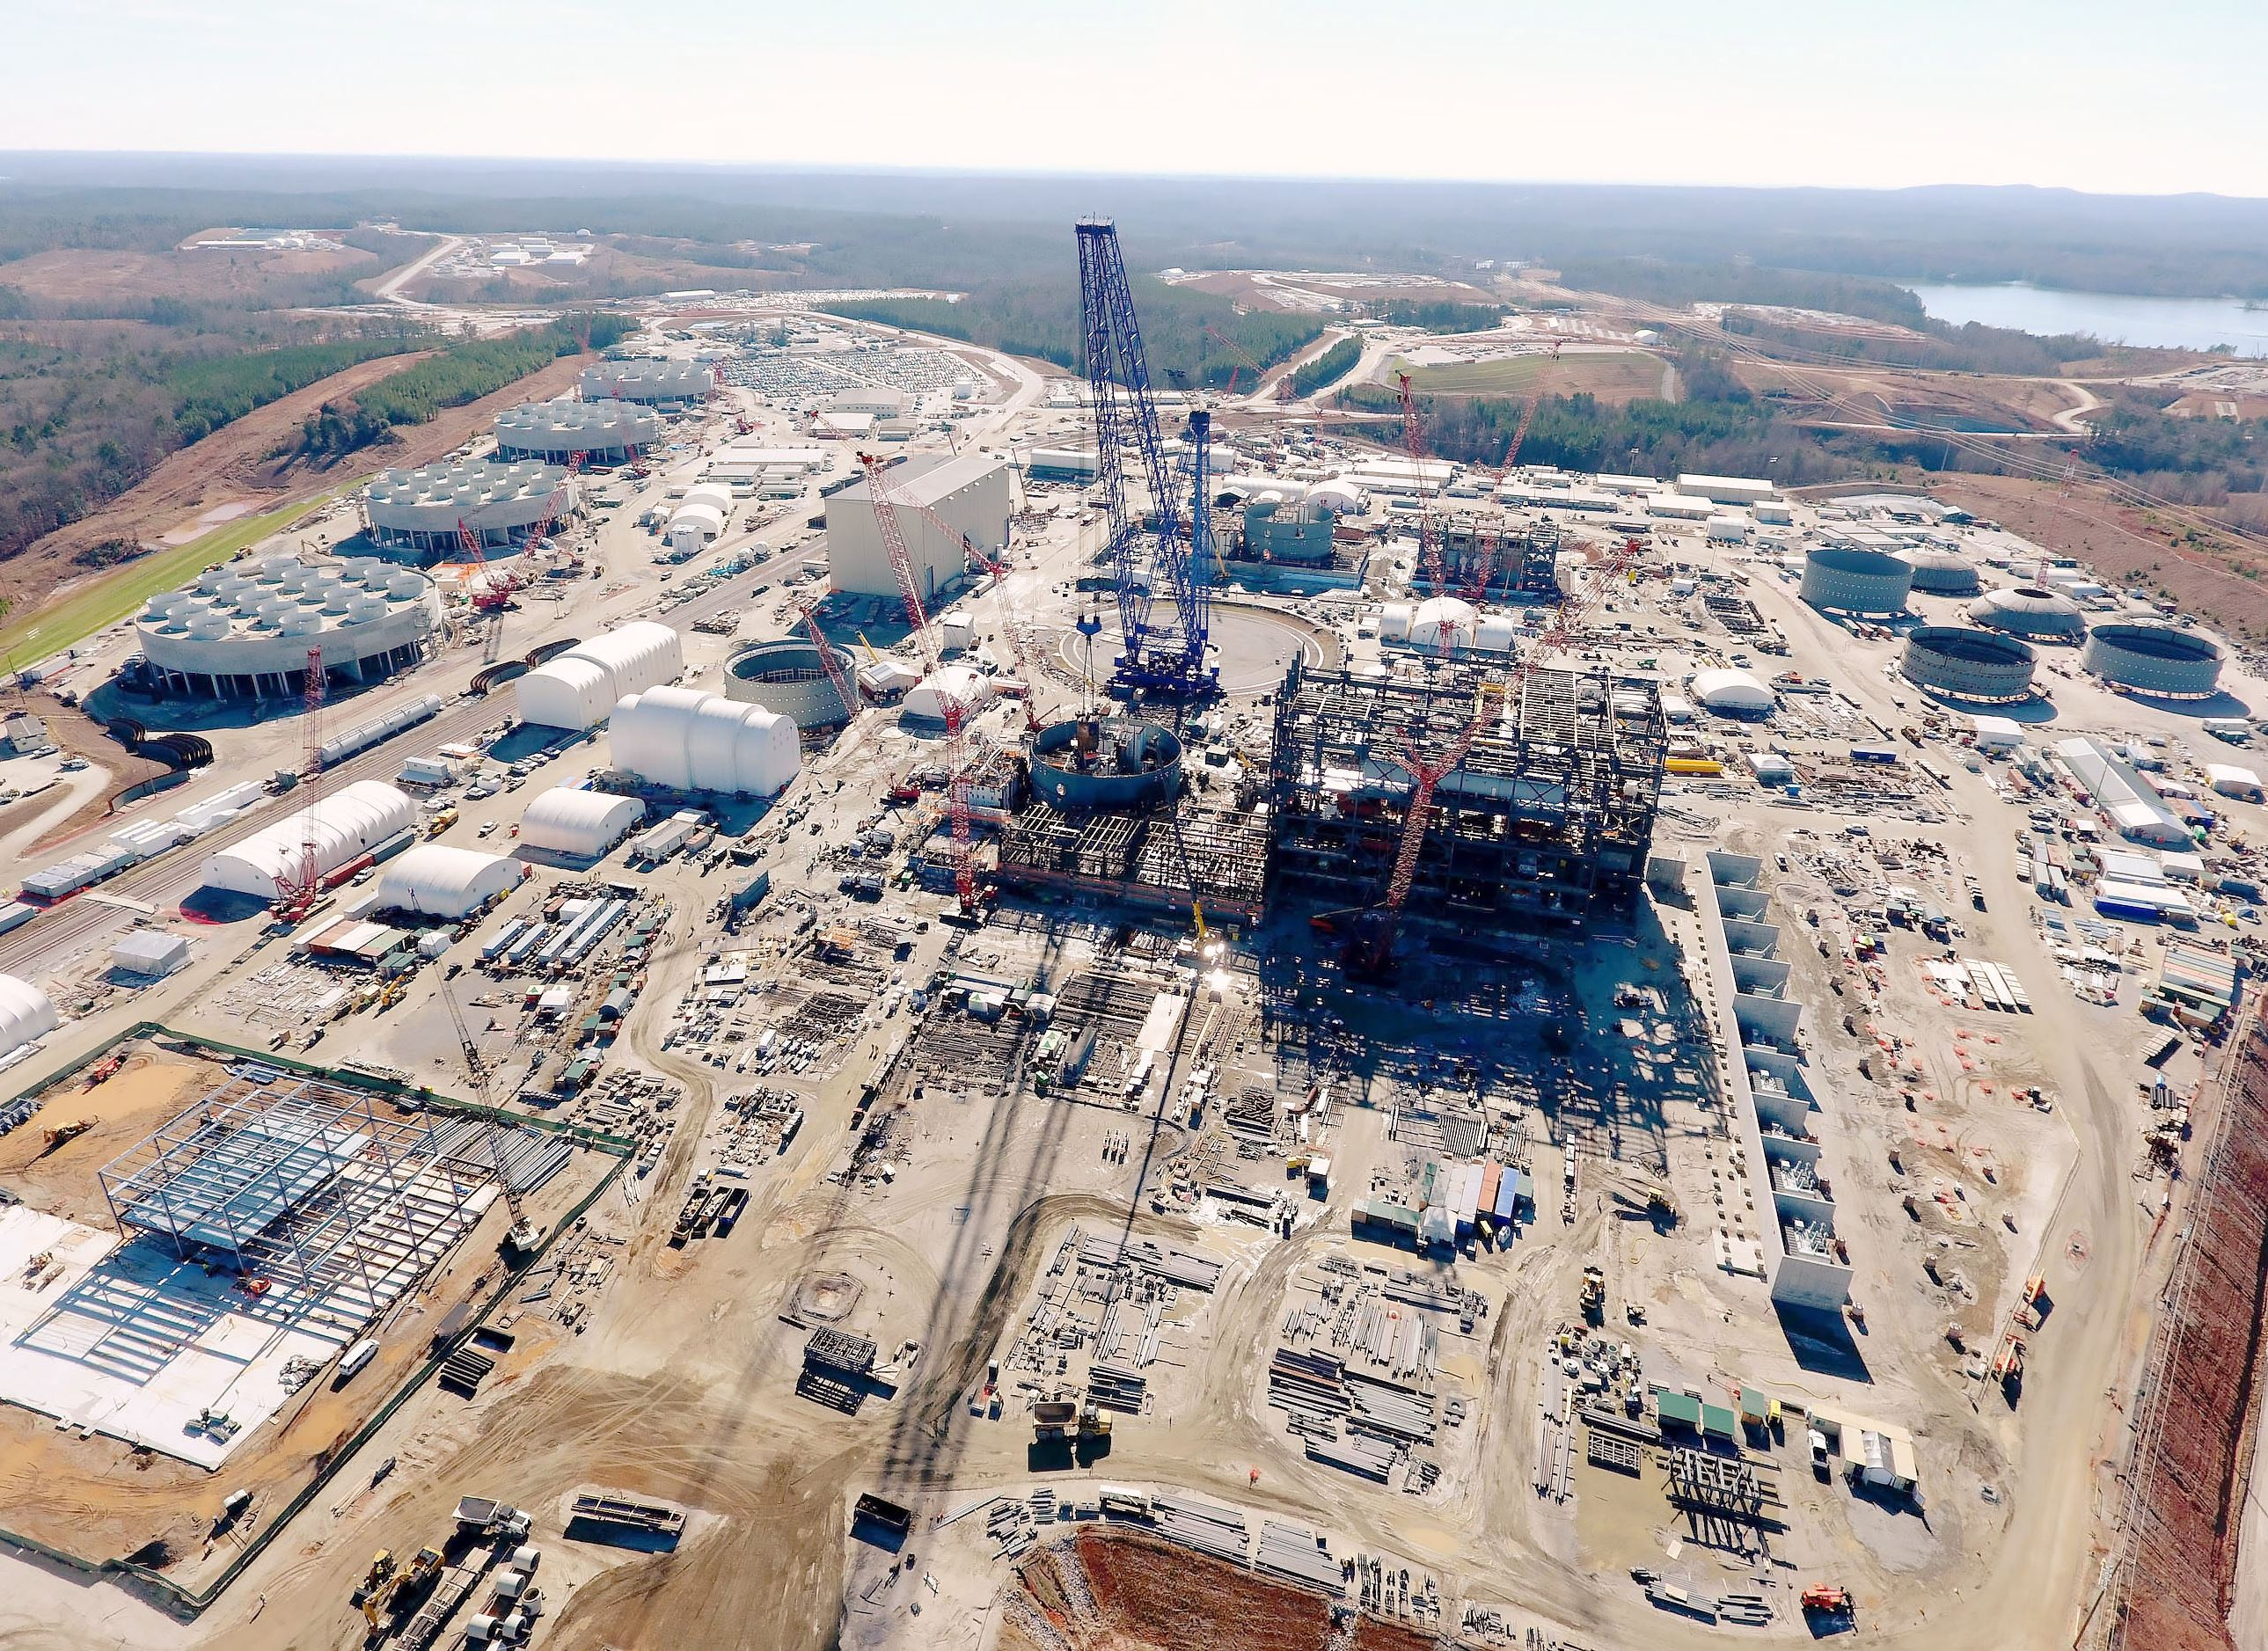 westinghouse-10 This file photo shows construction at the V.C. Summer Nuclear Station in Jenkinsville, S.C., where Westinghouse Electric Co. was building two reactors. Both projects were canceled last week.